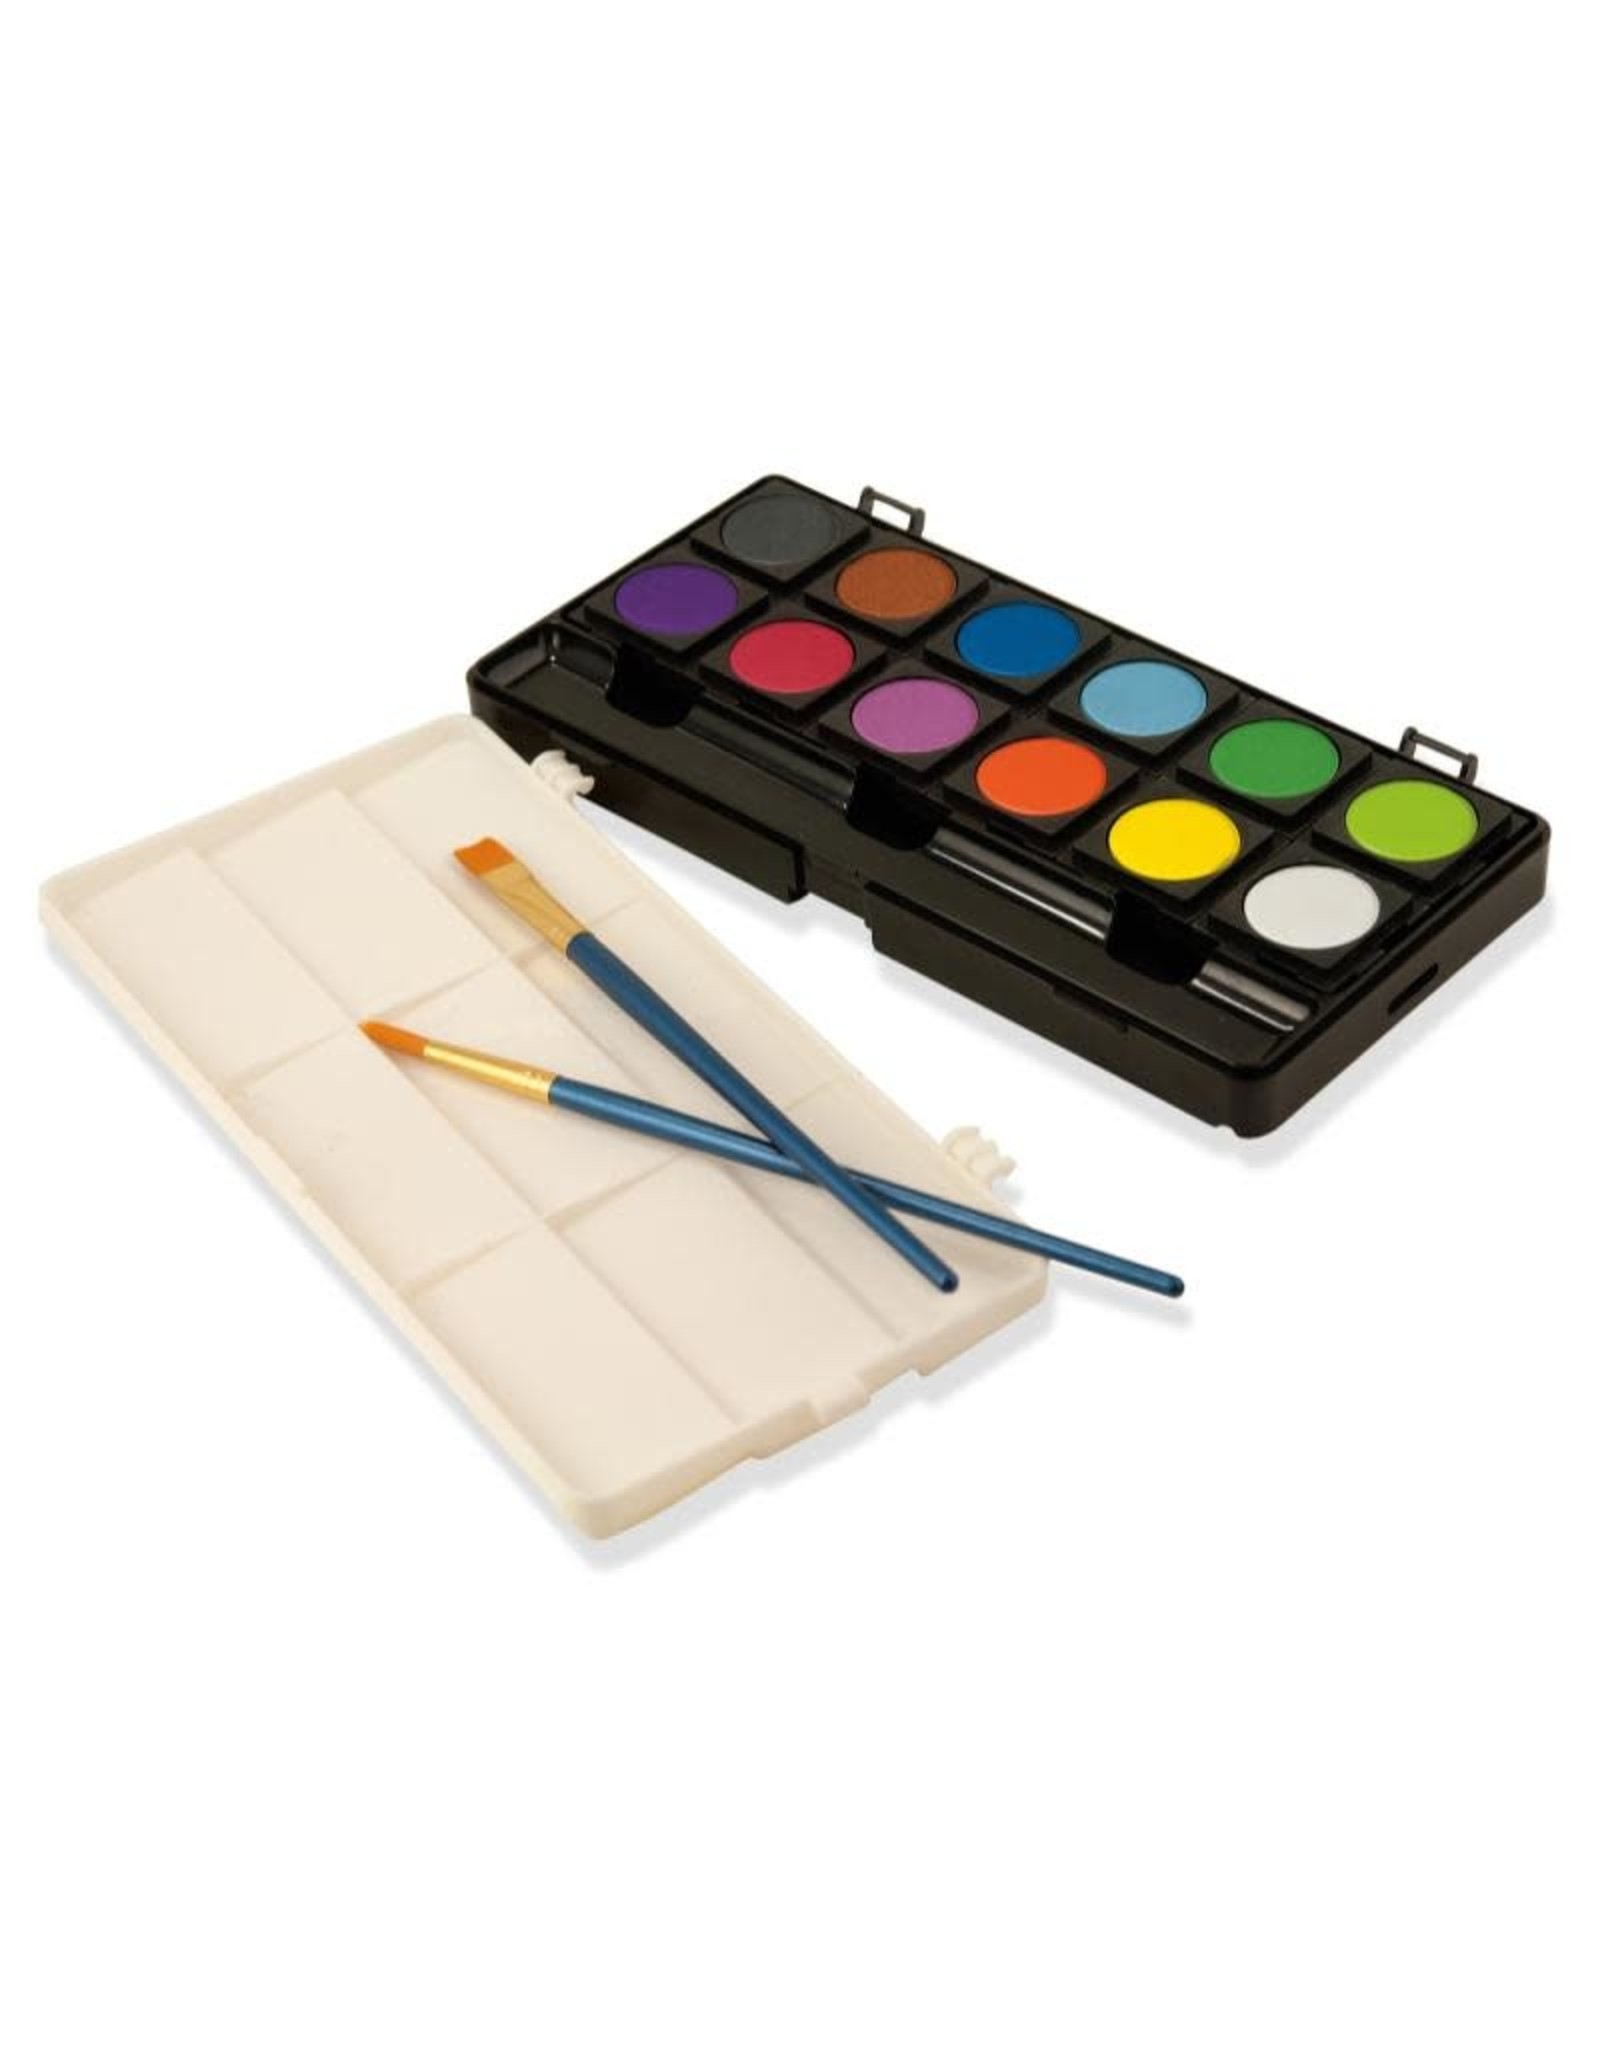 Peter Pauper Dry Gouache Paint Set